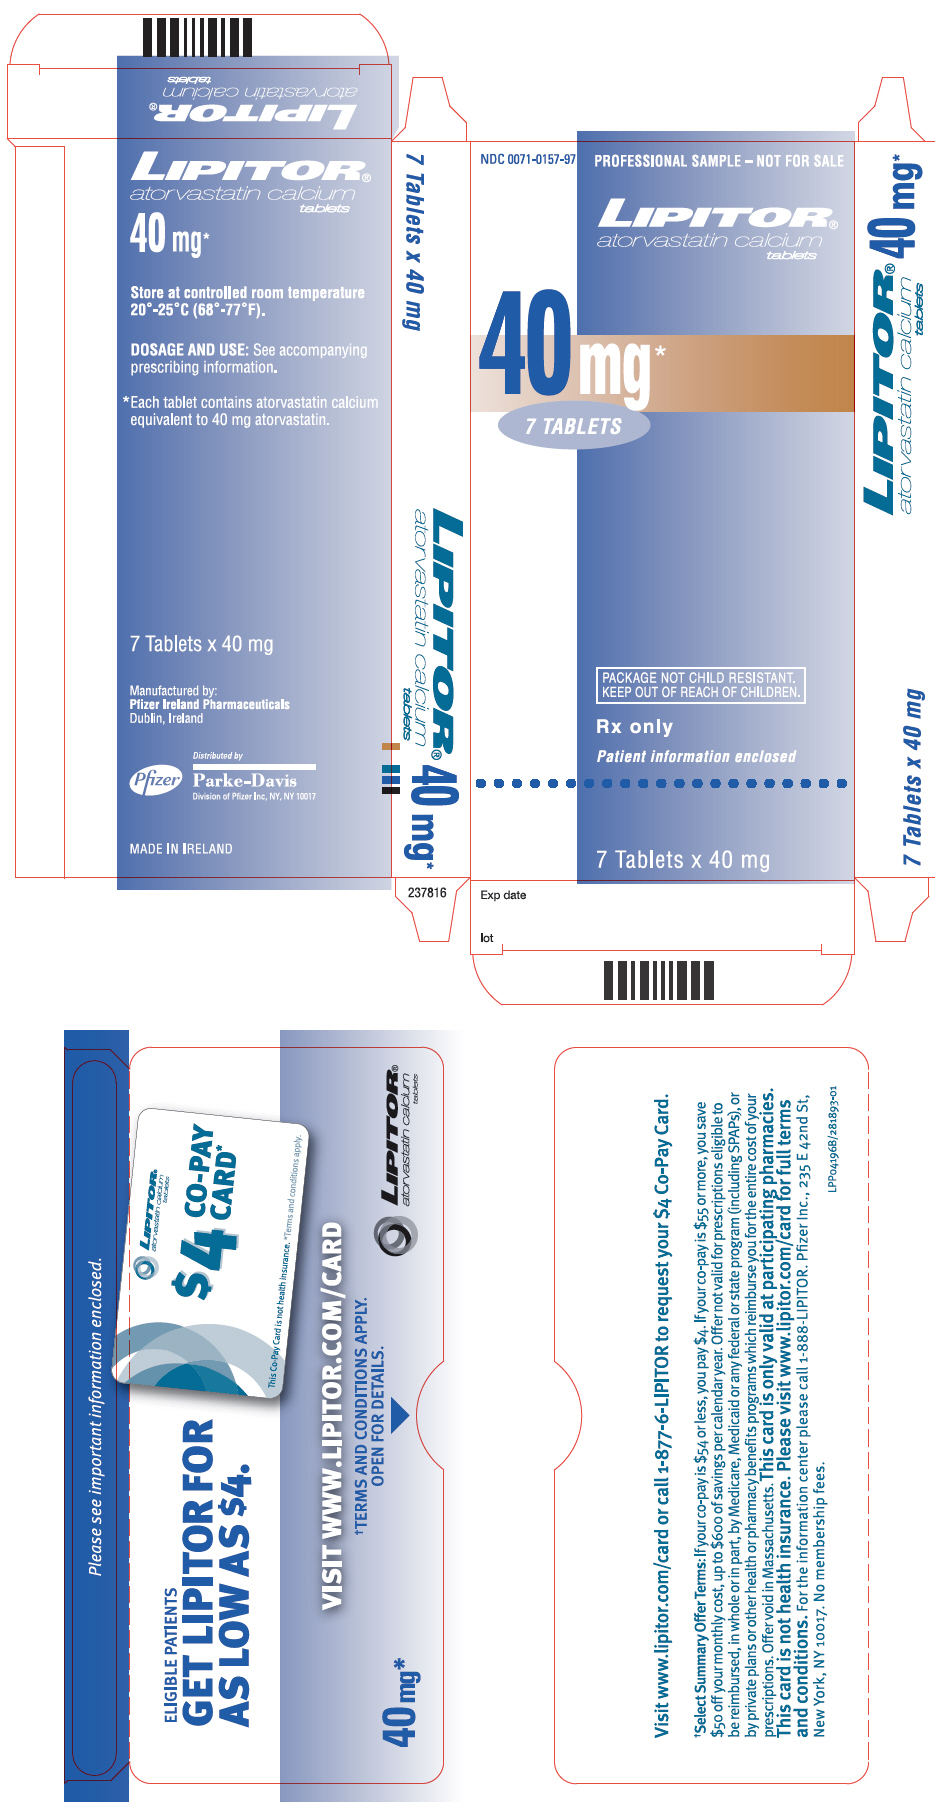 PRINCIPAL DISPLAY PANEL - 40 mg Tablet Packet Carton